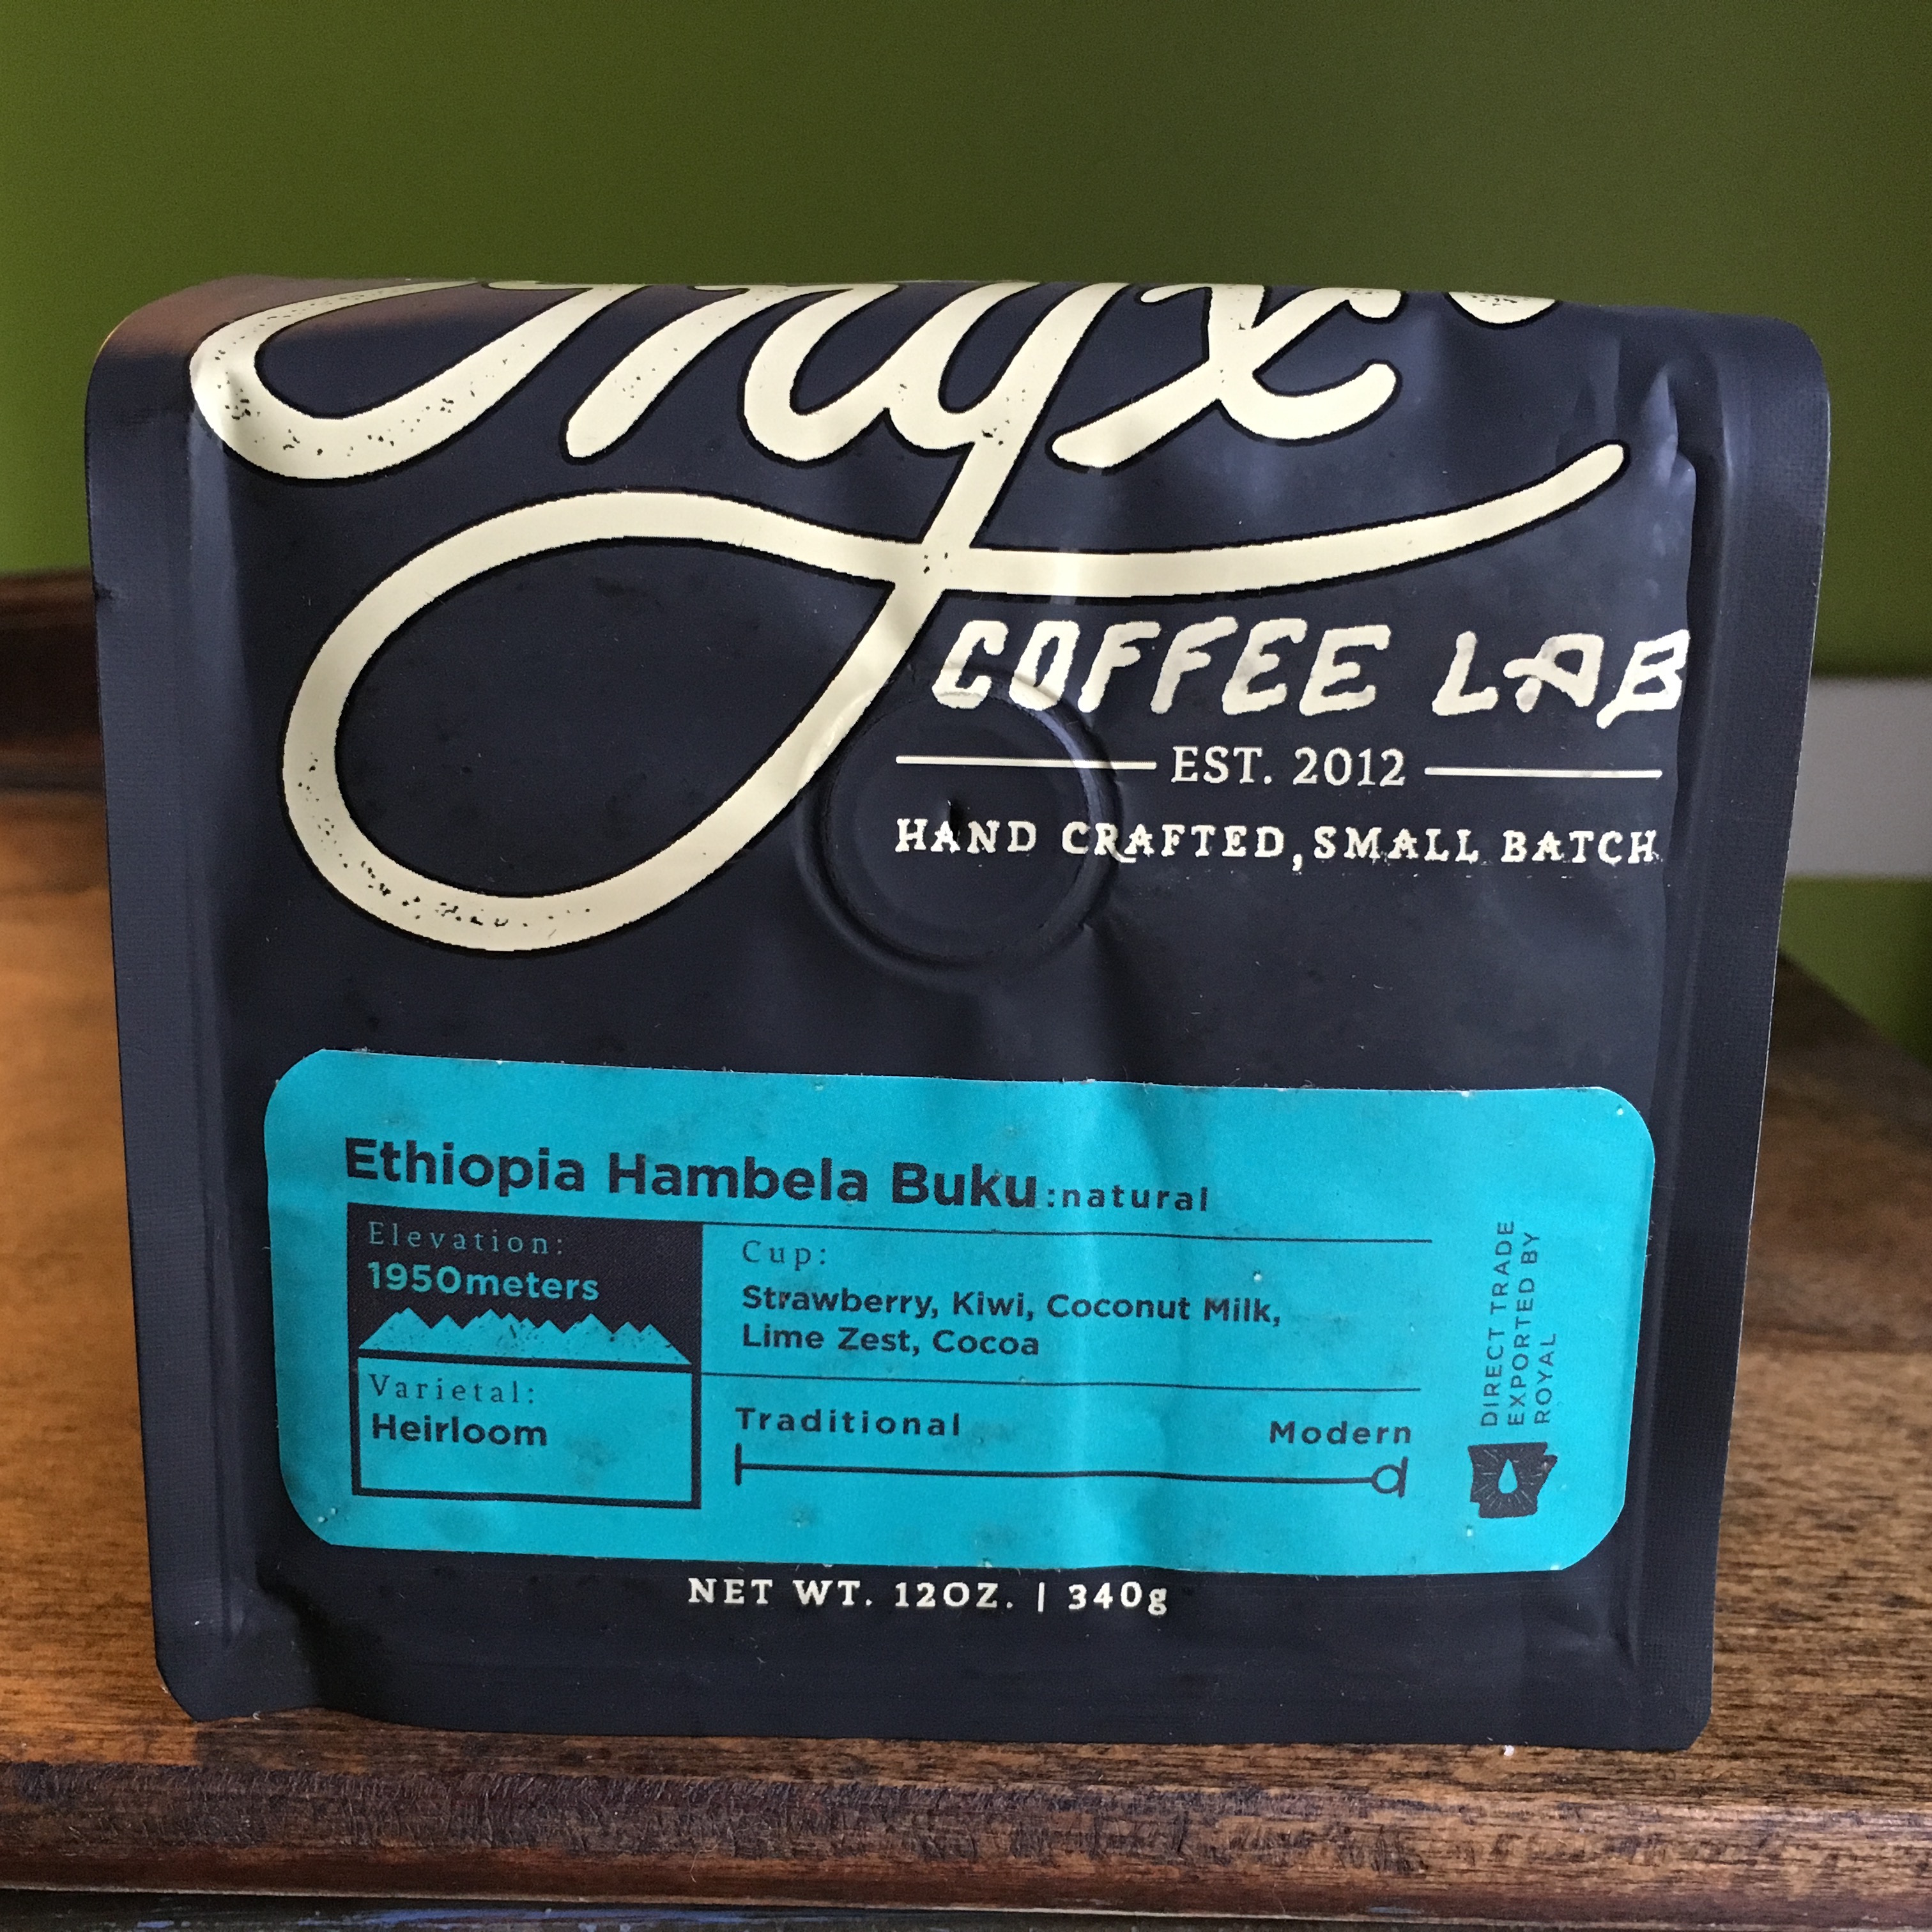 Onyx Coffee Lab Ethiopia Hambela Buku Natural